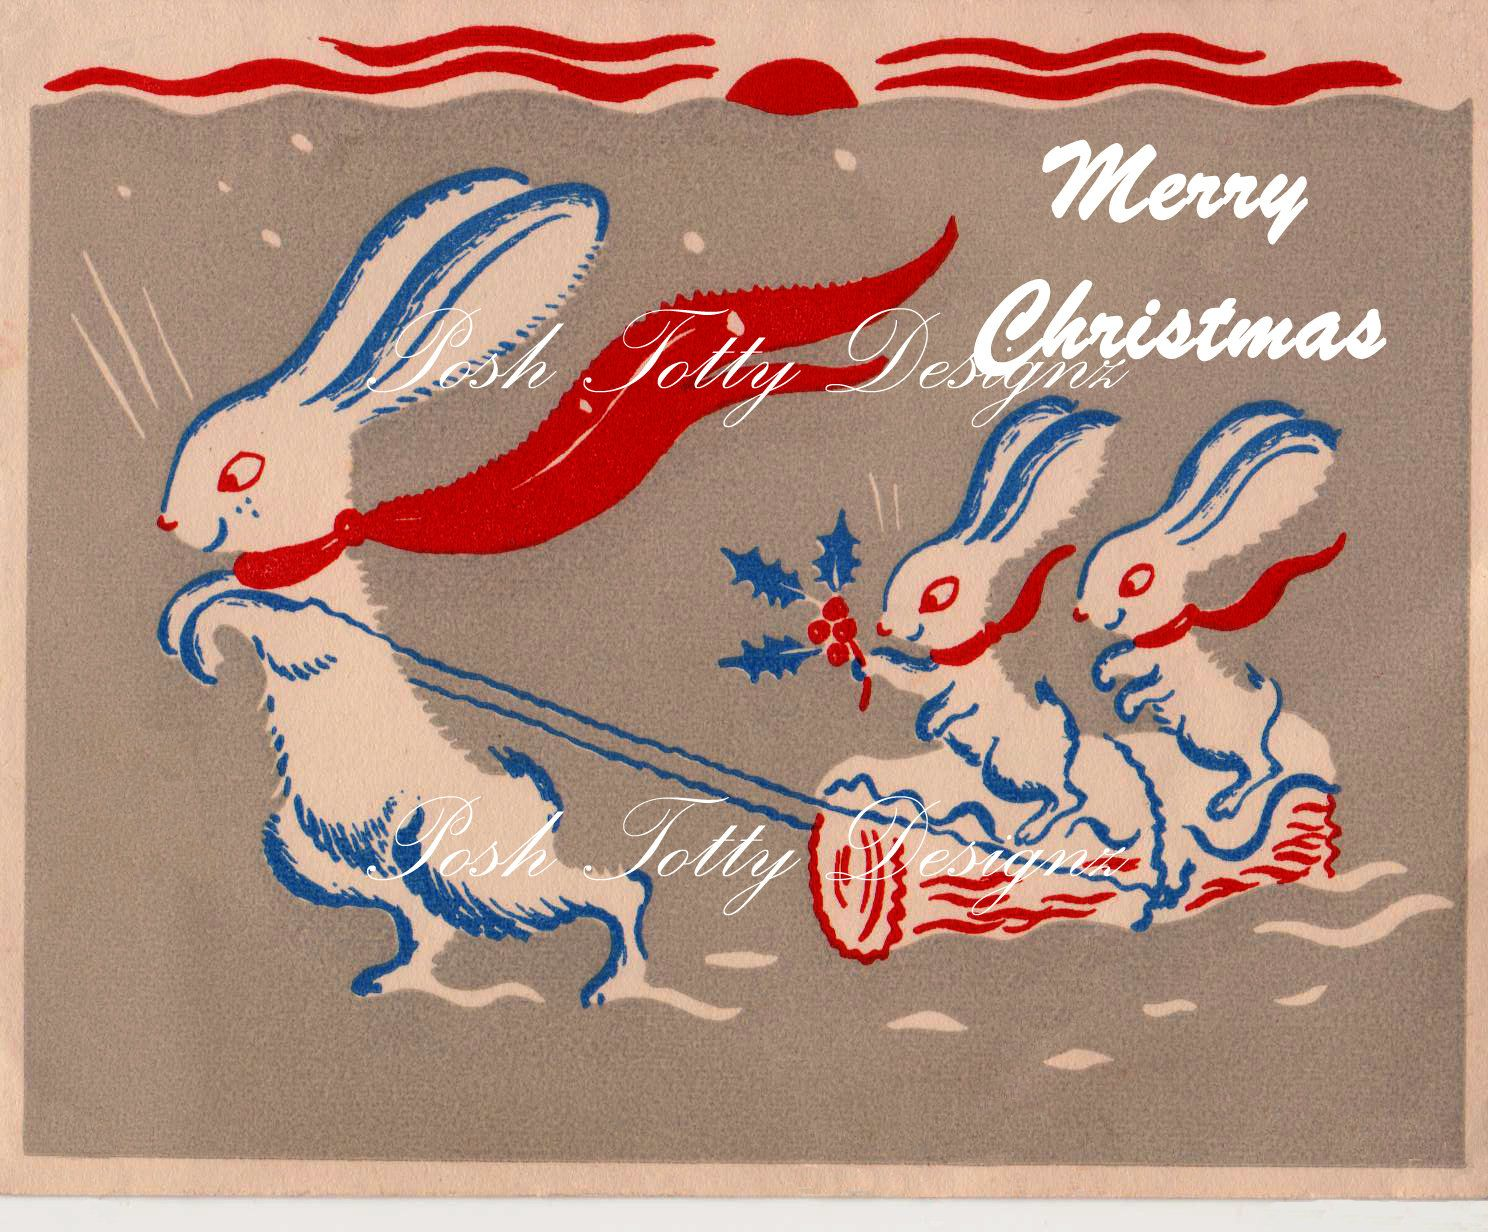 Bunnies In The Snow Christmas Art Deco 1930s Vintage Greetings Card Digital Download Images (290)